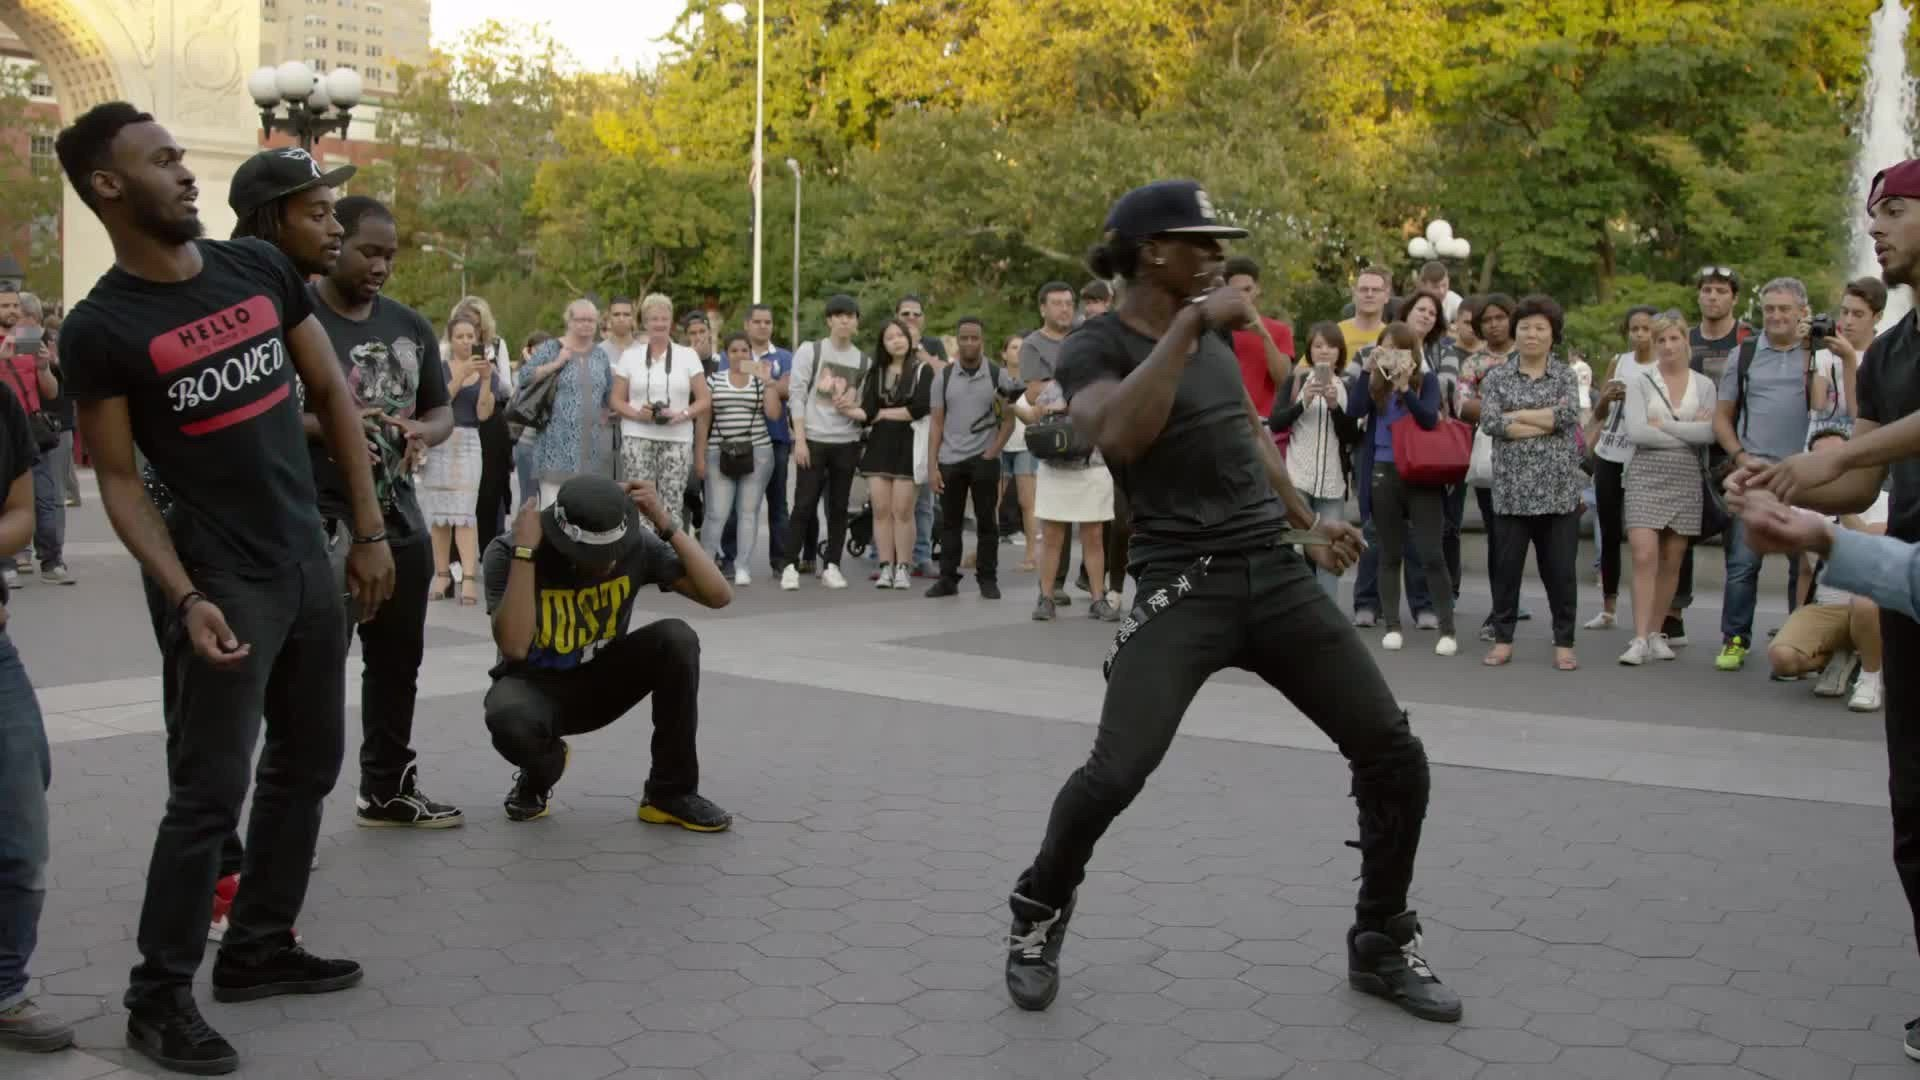 dancers in Washington Square Park summer slow motion New York City 4K